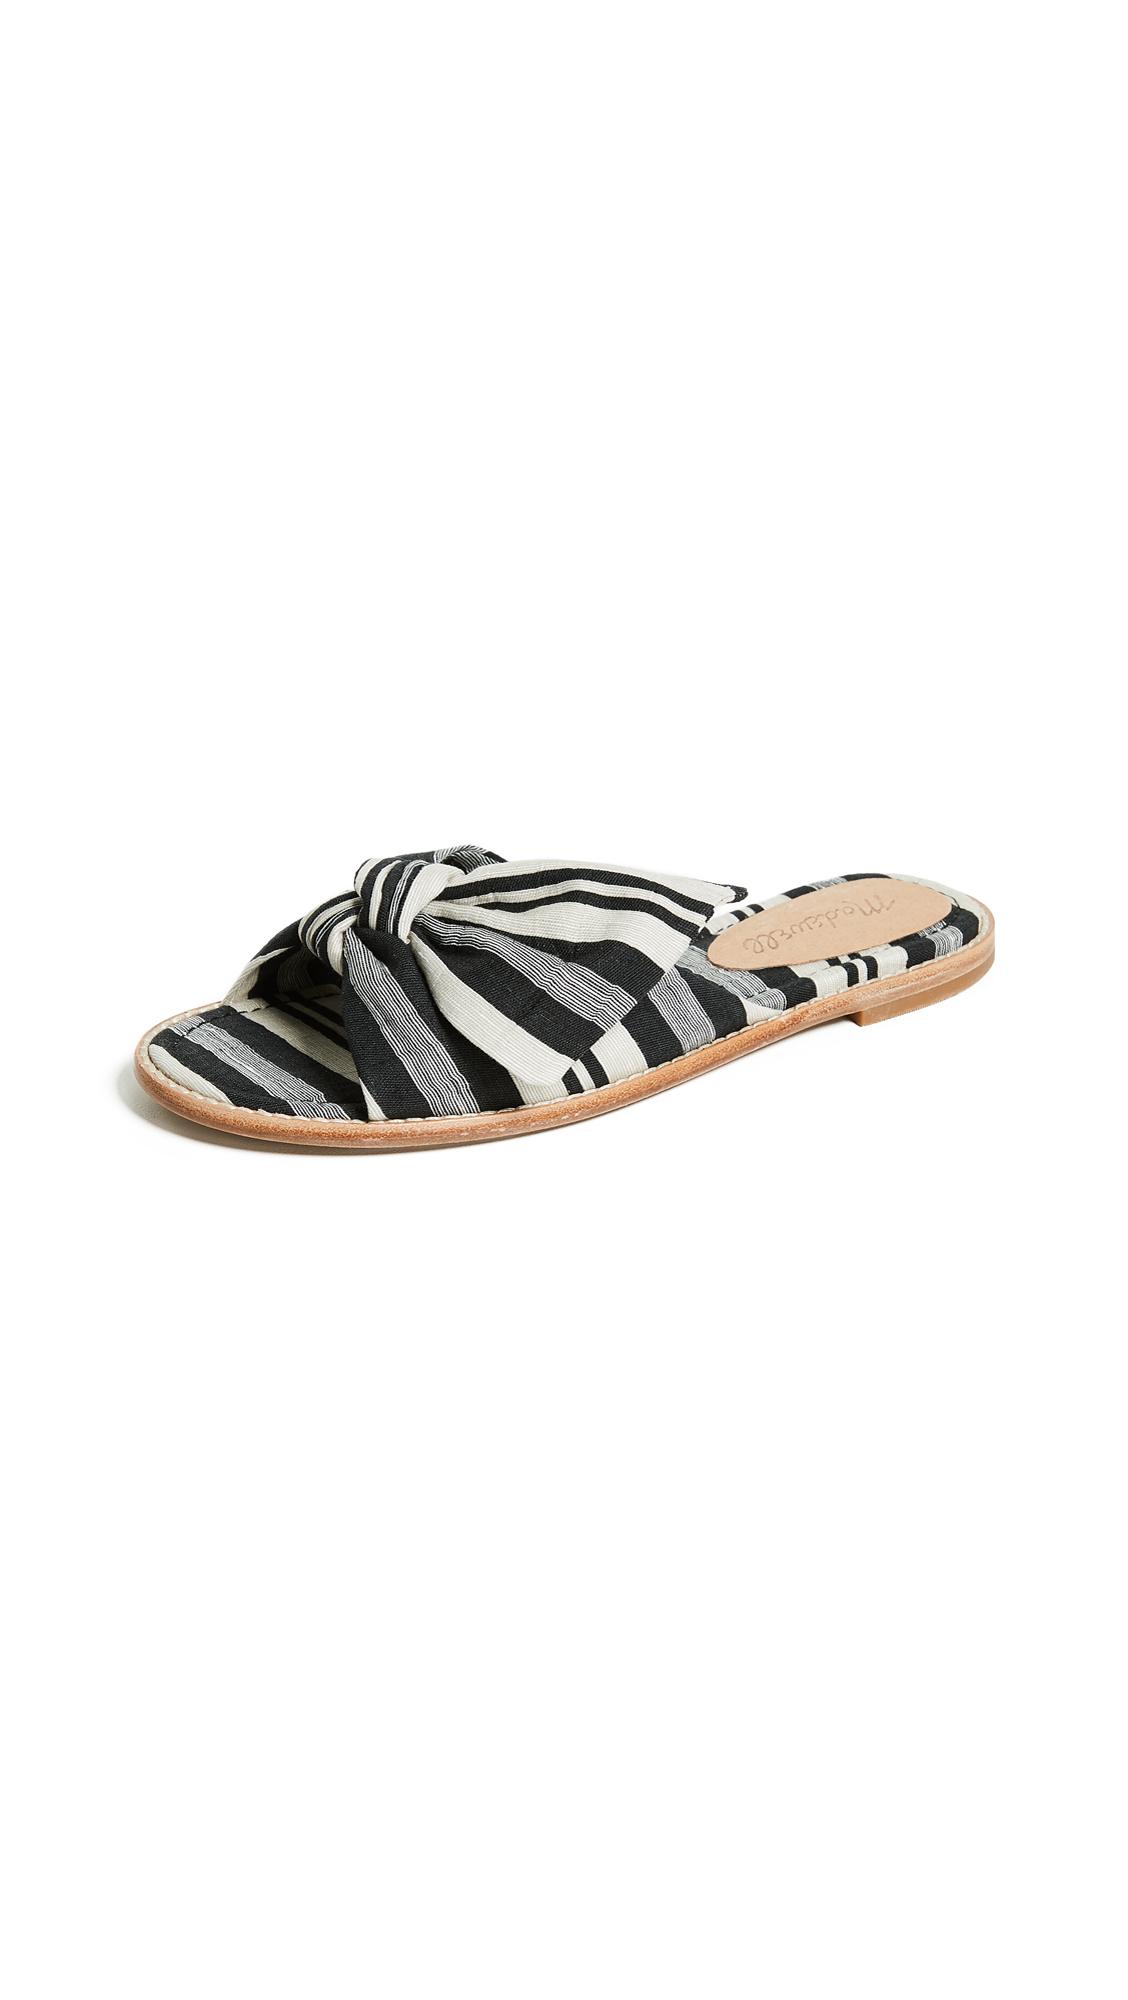 Madewell The Naida Half Bow Sandals - Stone